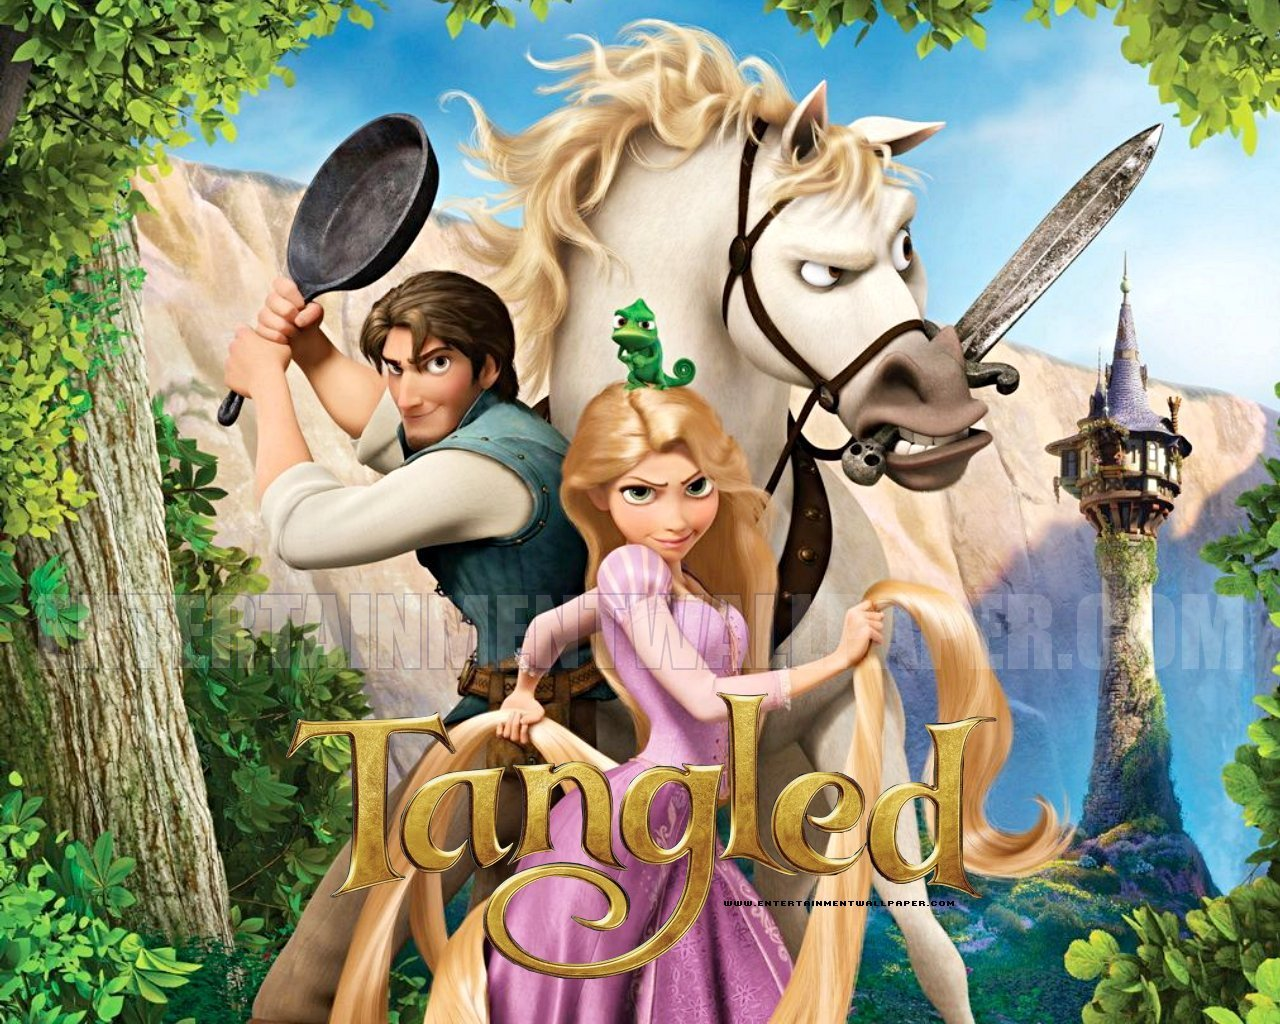 Tangled Disney Wallpaper   Princess Rapunzel from Tangled Wallpaper 1280x1024